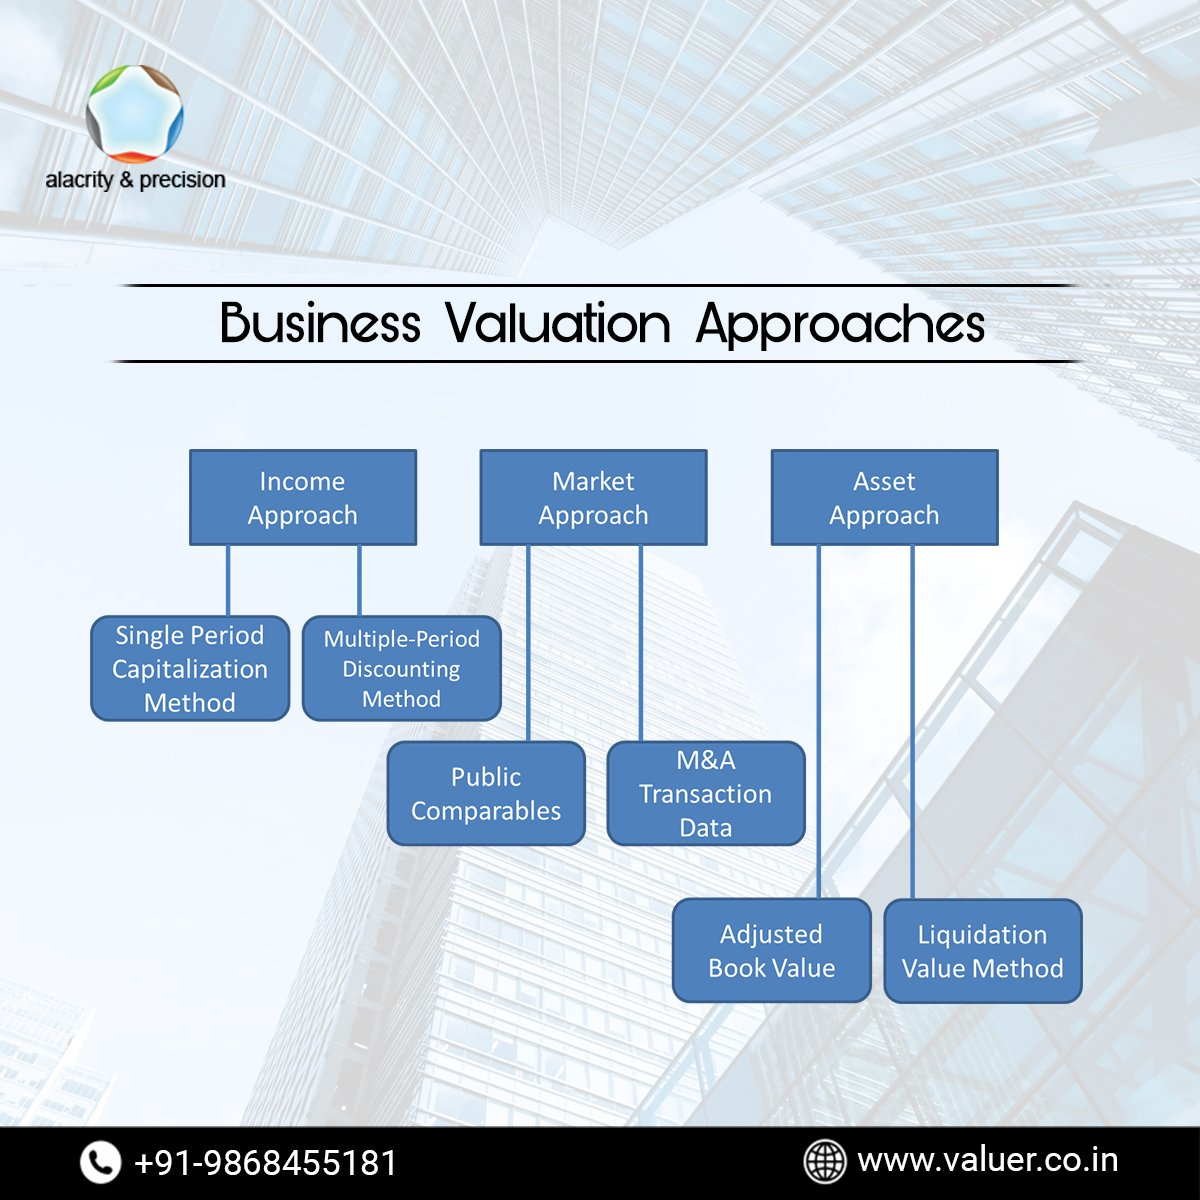 There are three broad approaches used for small Business Valuation. Each approach serves as a foundation for a group of methods used to determine the business value.For more:👇Visit: http://valuer.co.in/ Call us:+91-986-845-5181#propertyvaluation #worth #businessvaluation